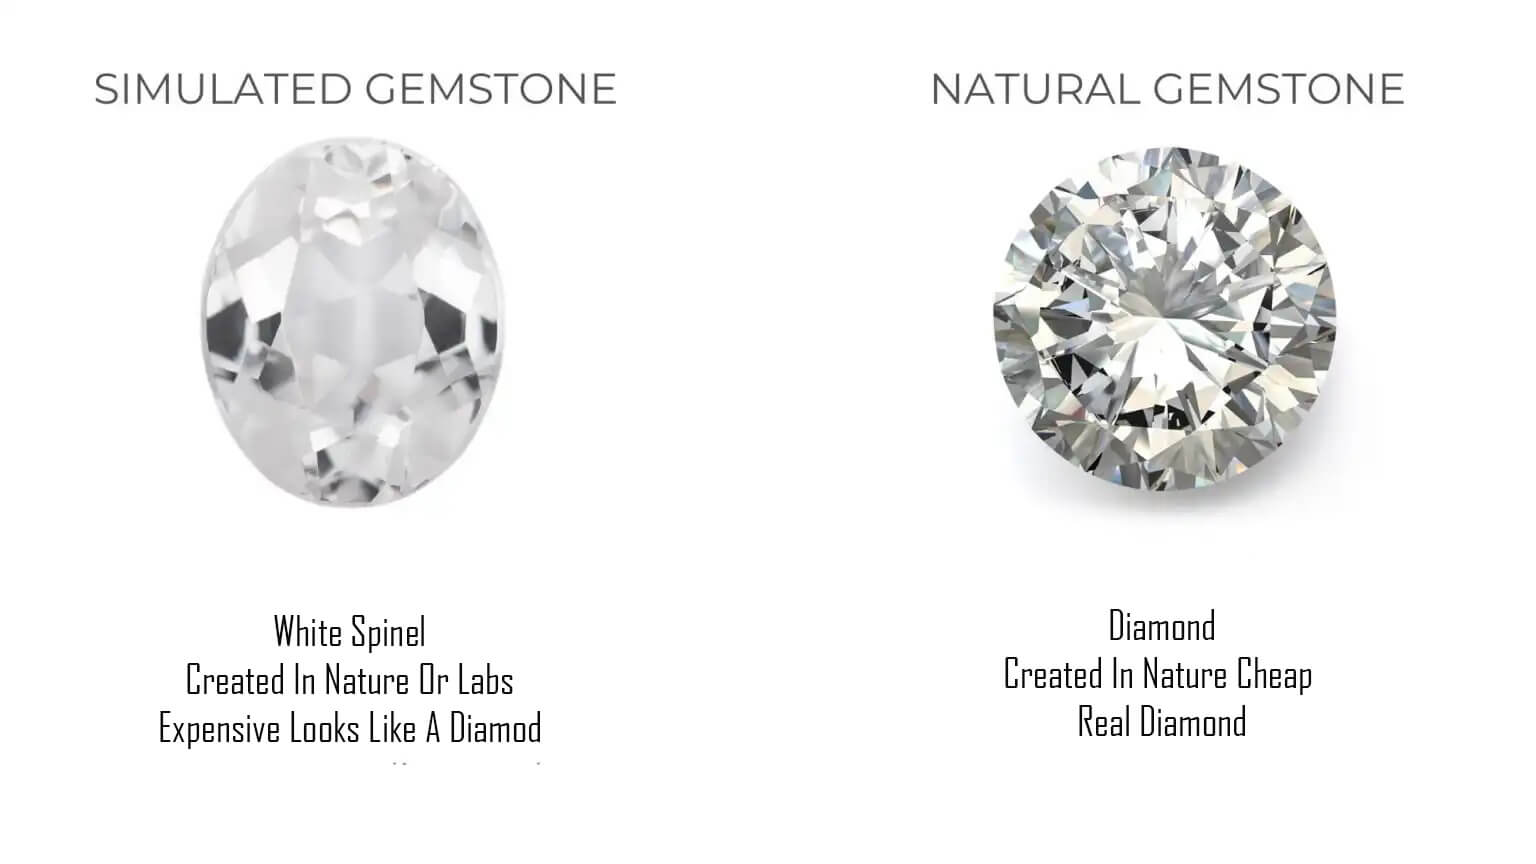 THE DIFFERENCE BETWEEN GENUINE & SIMULATED GEMSTONES 1